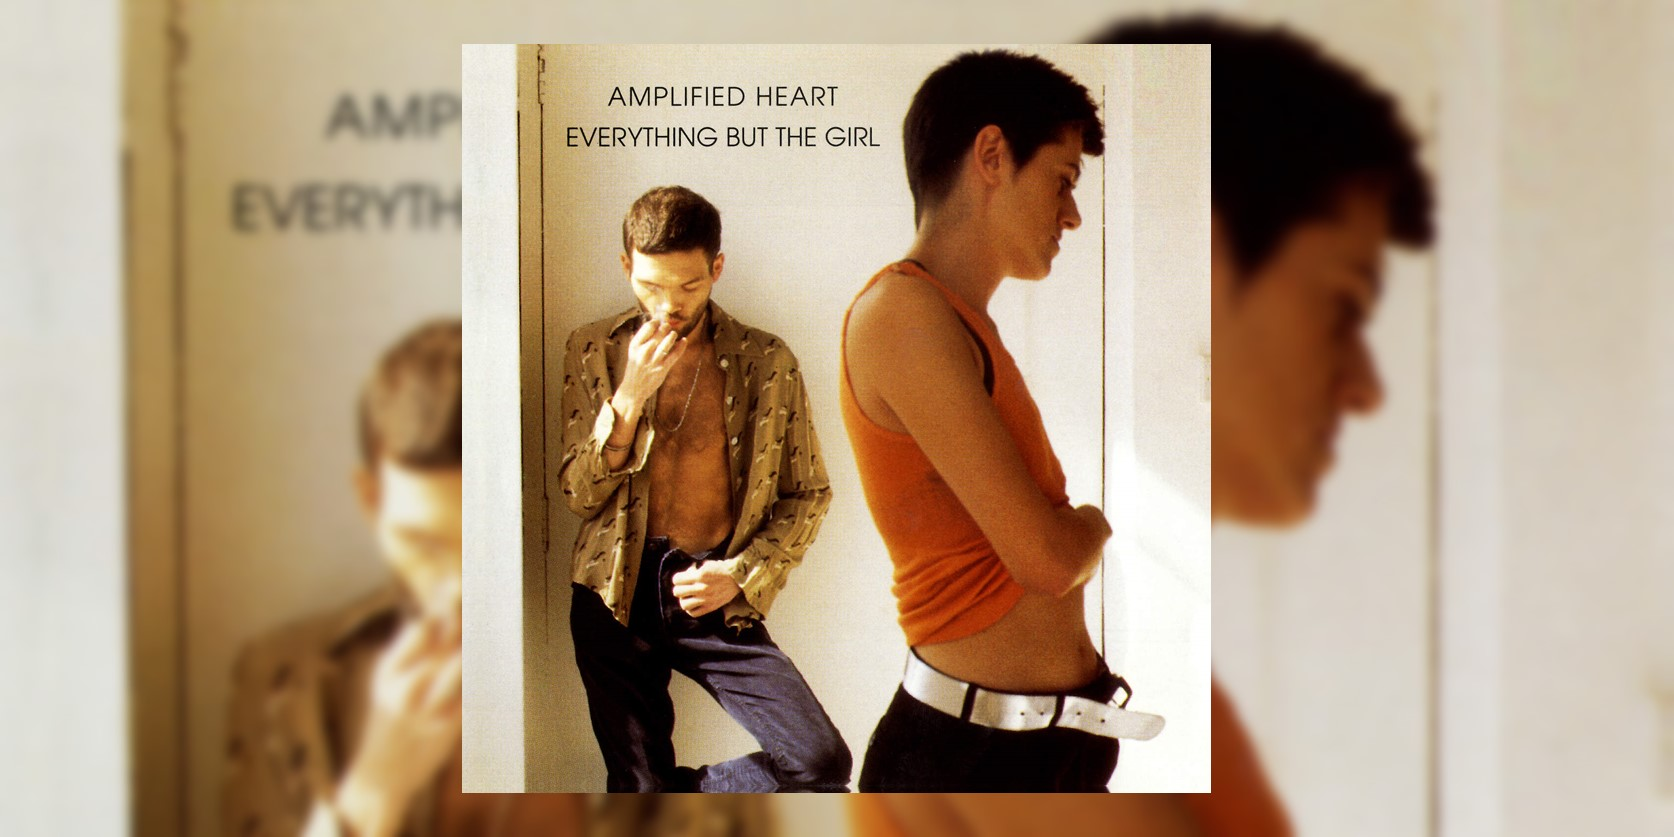 EverythingButTheGirl_AmplifiedHeart_MainImage.jpg